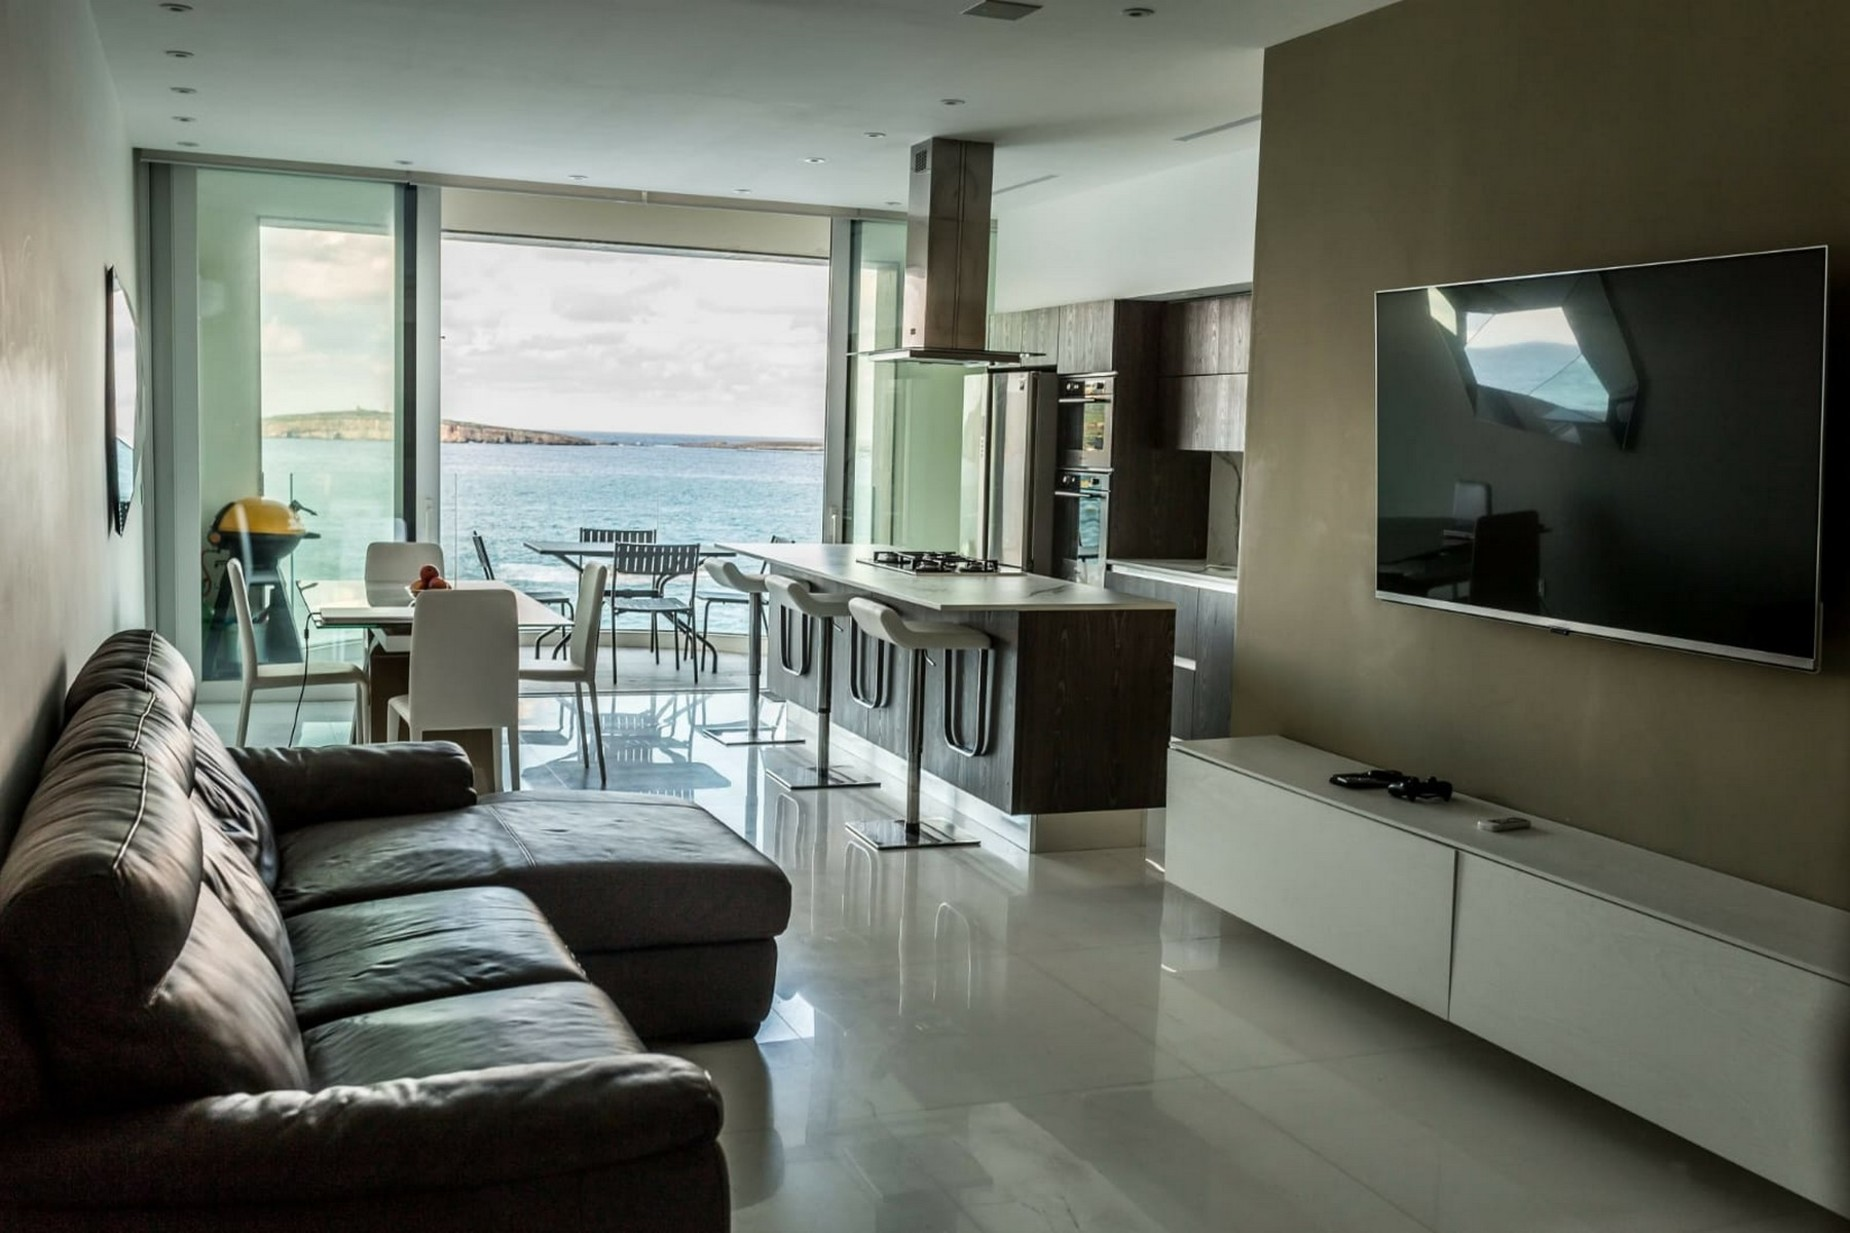 3 bed Apartment For Rent in St Paul's Bay, St Paul's Bay - thumb 3